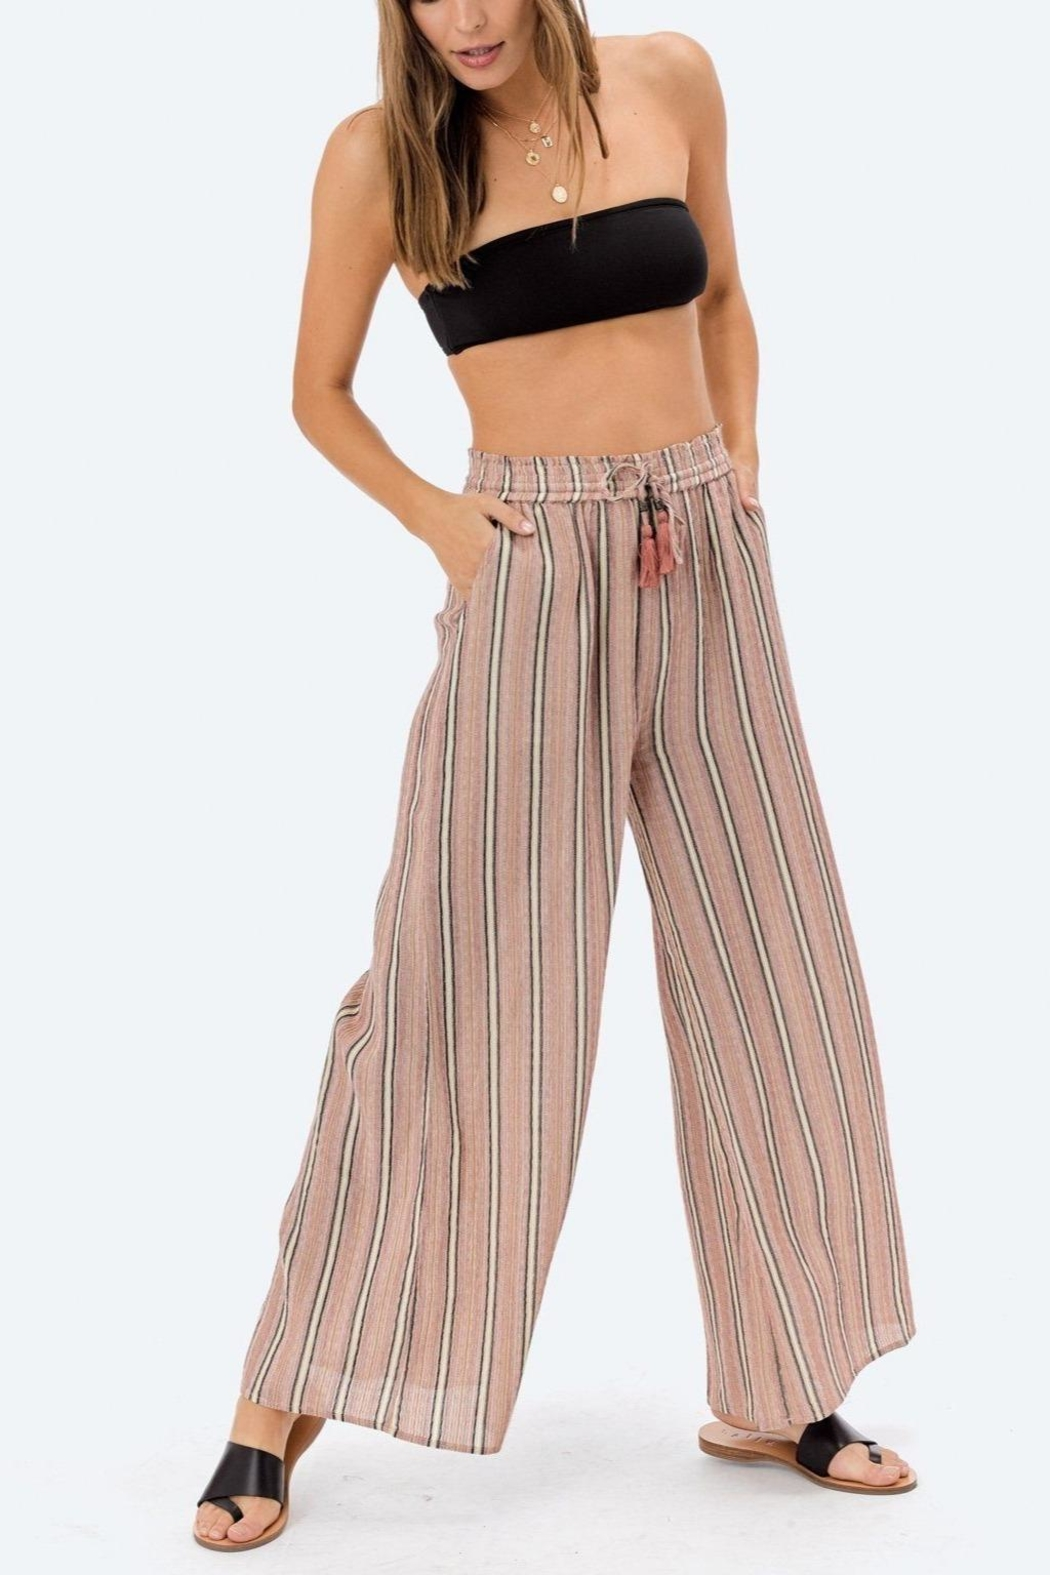 5aa84089eb3 Lovestitch Malia Striped Pant from Georgia by Posh Clothing Boutique ...